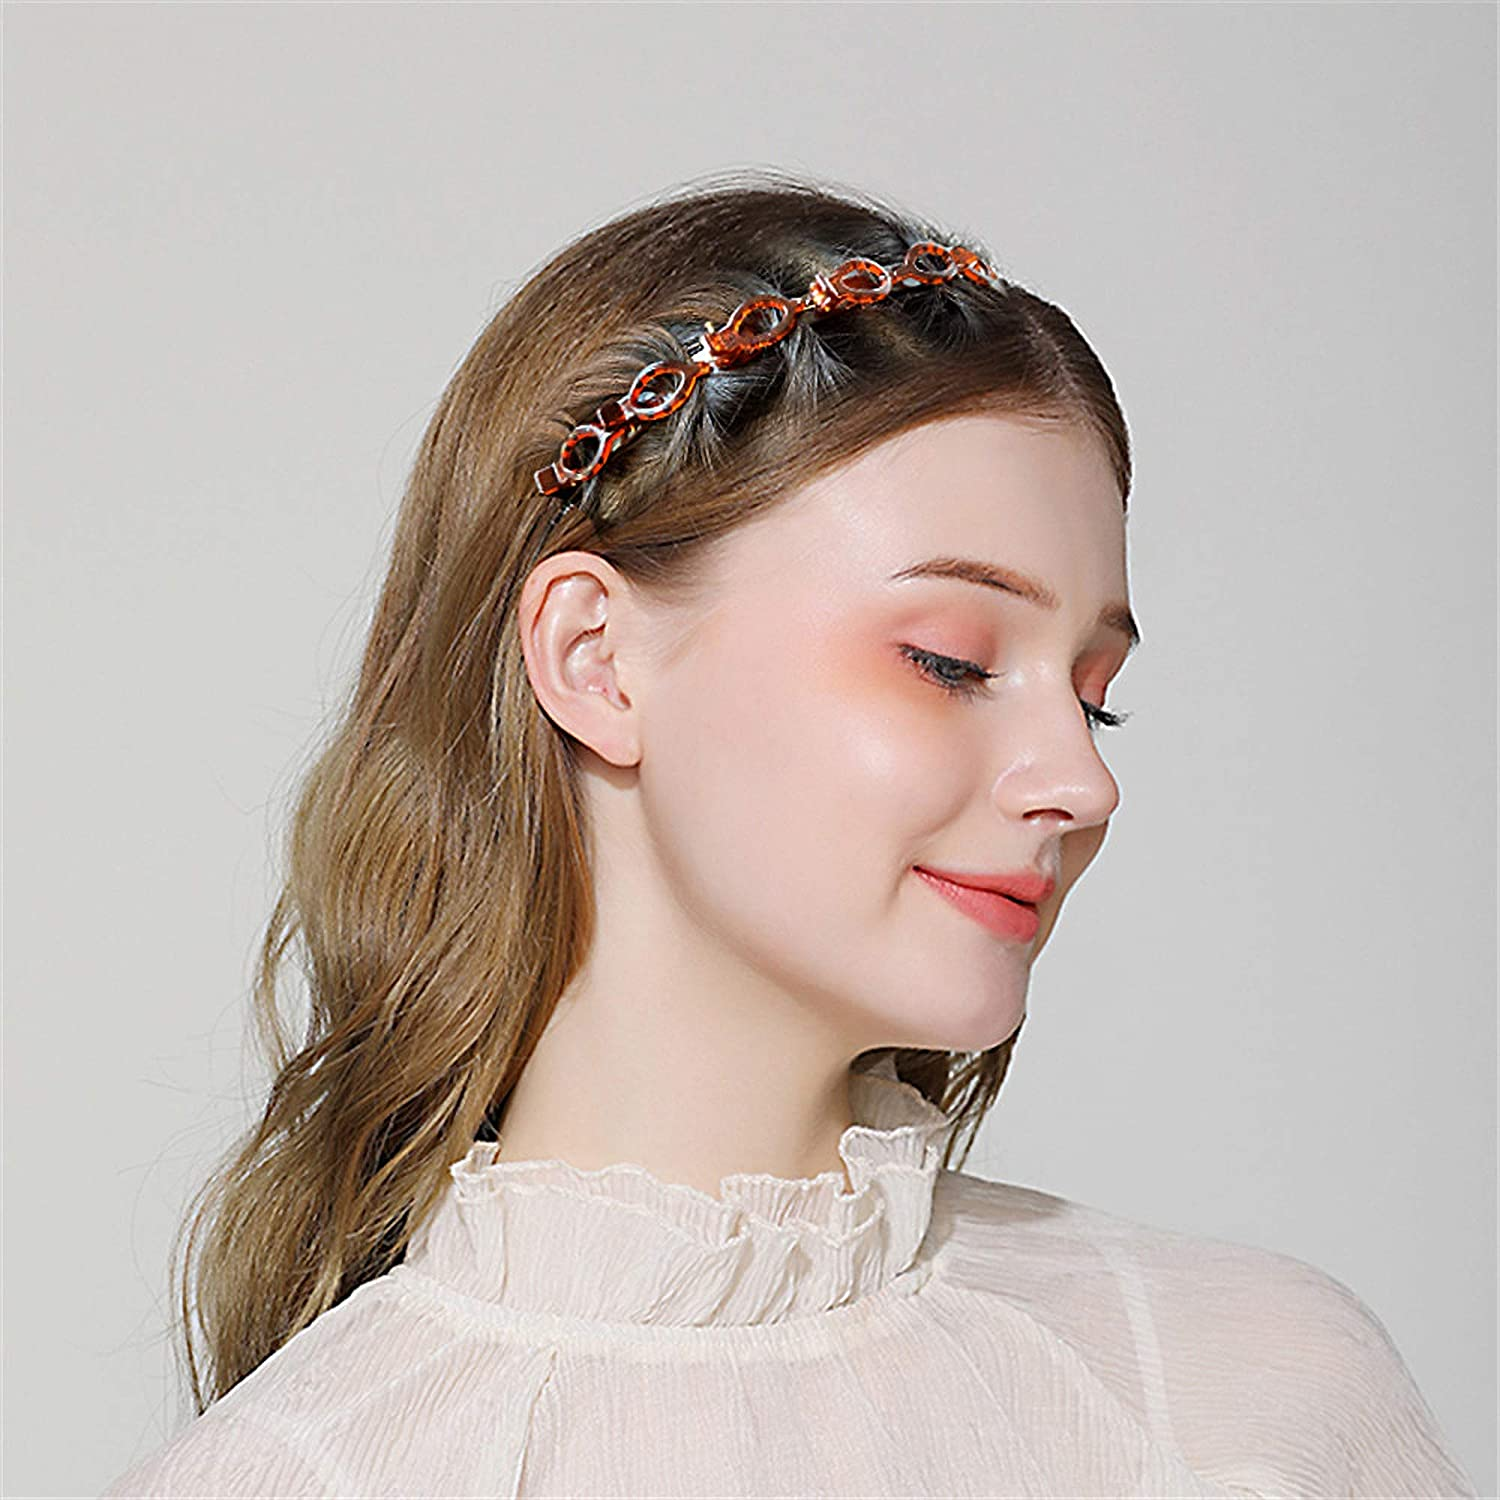 Double Bangs Hairstyle Hairpin – Trend Pluff